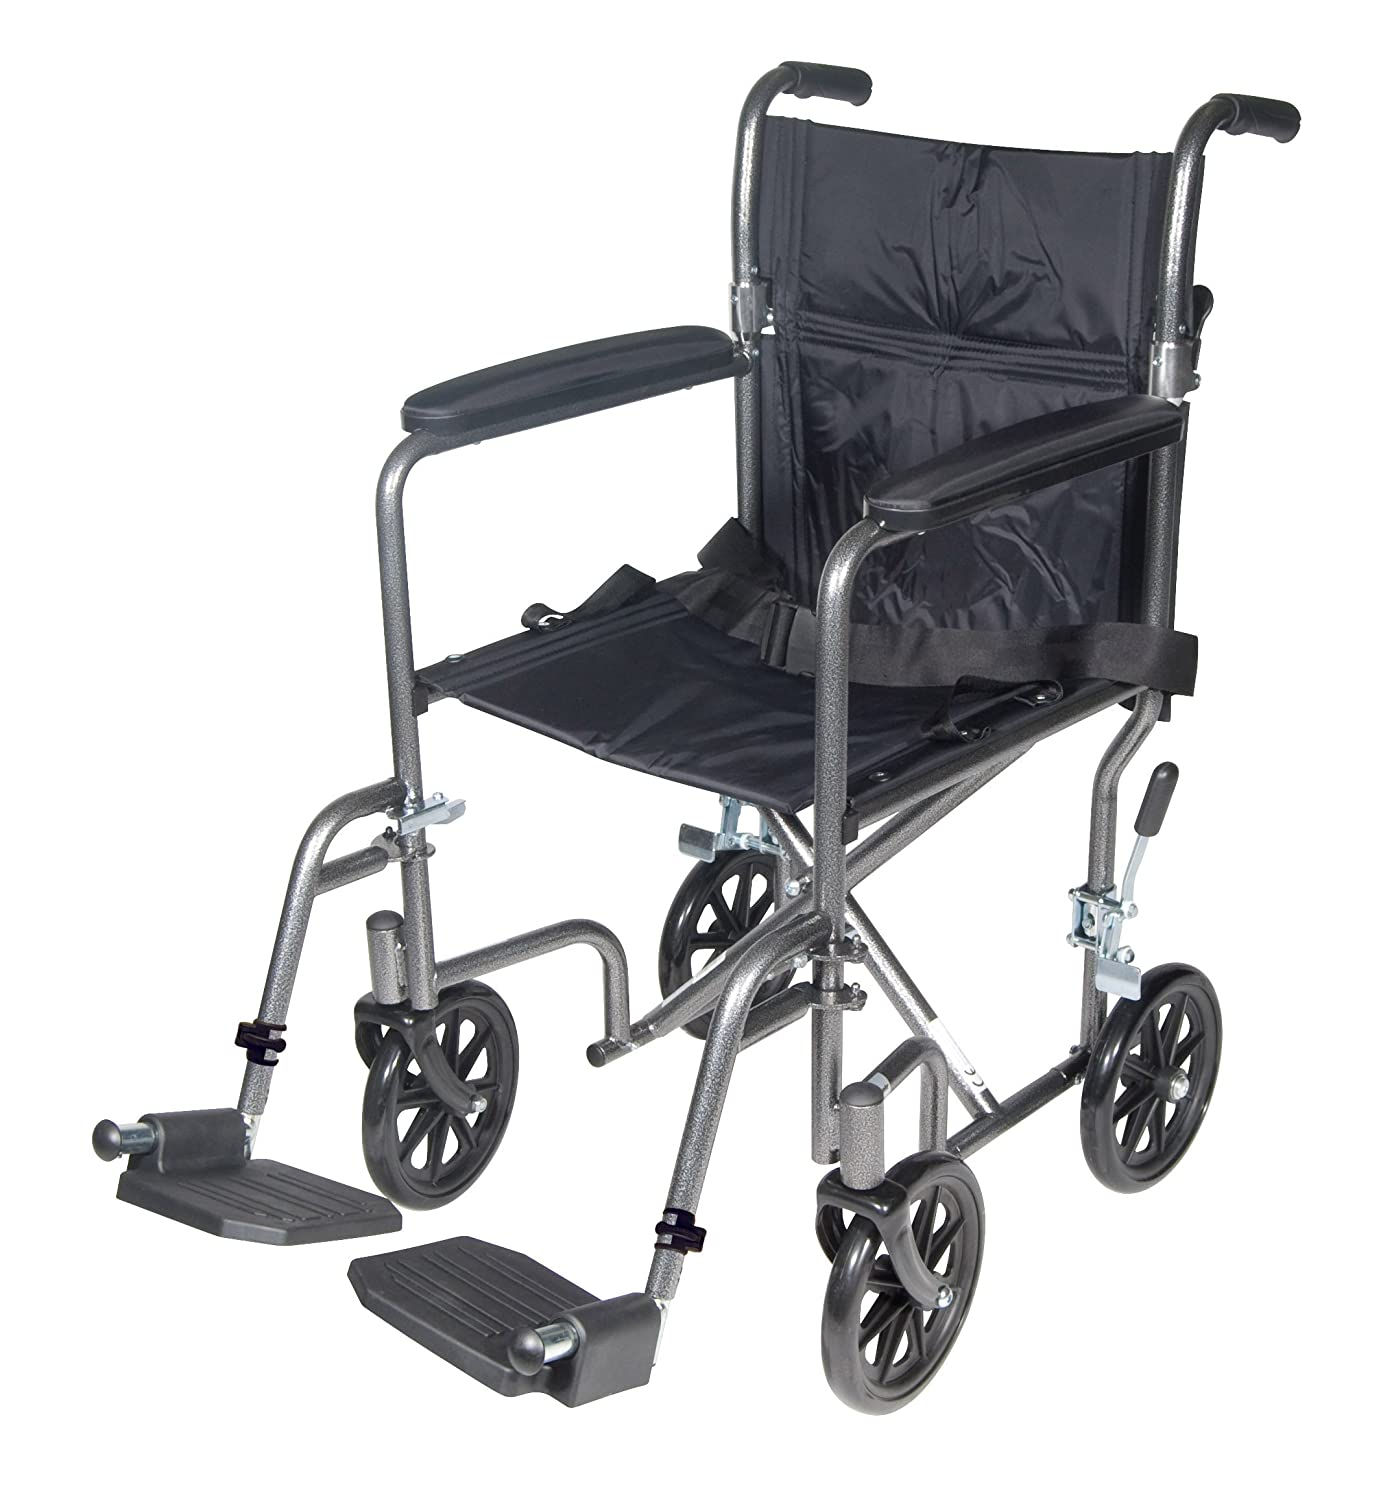 Transport chair amazon - Amazon Com Drive Medical Tr37e Sv Lightweight Steel Transport Wheelchair Fixed Full Arms 17 Inch Seat Health Personal Care